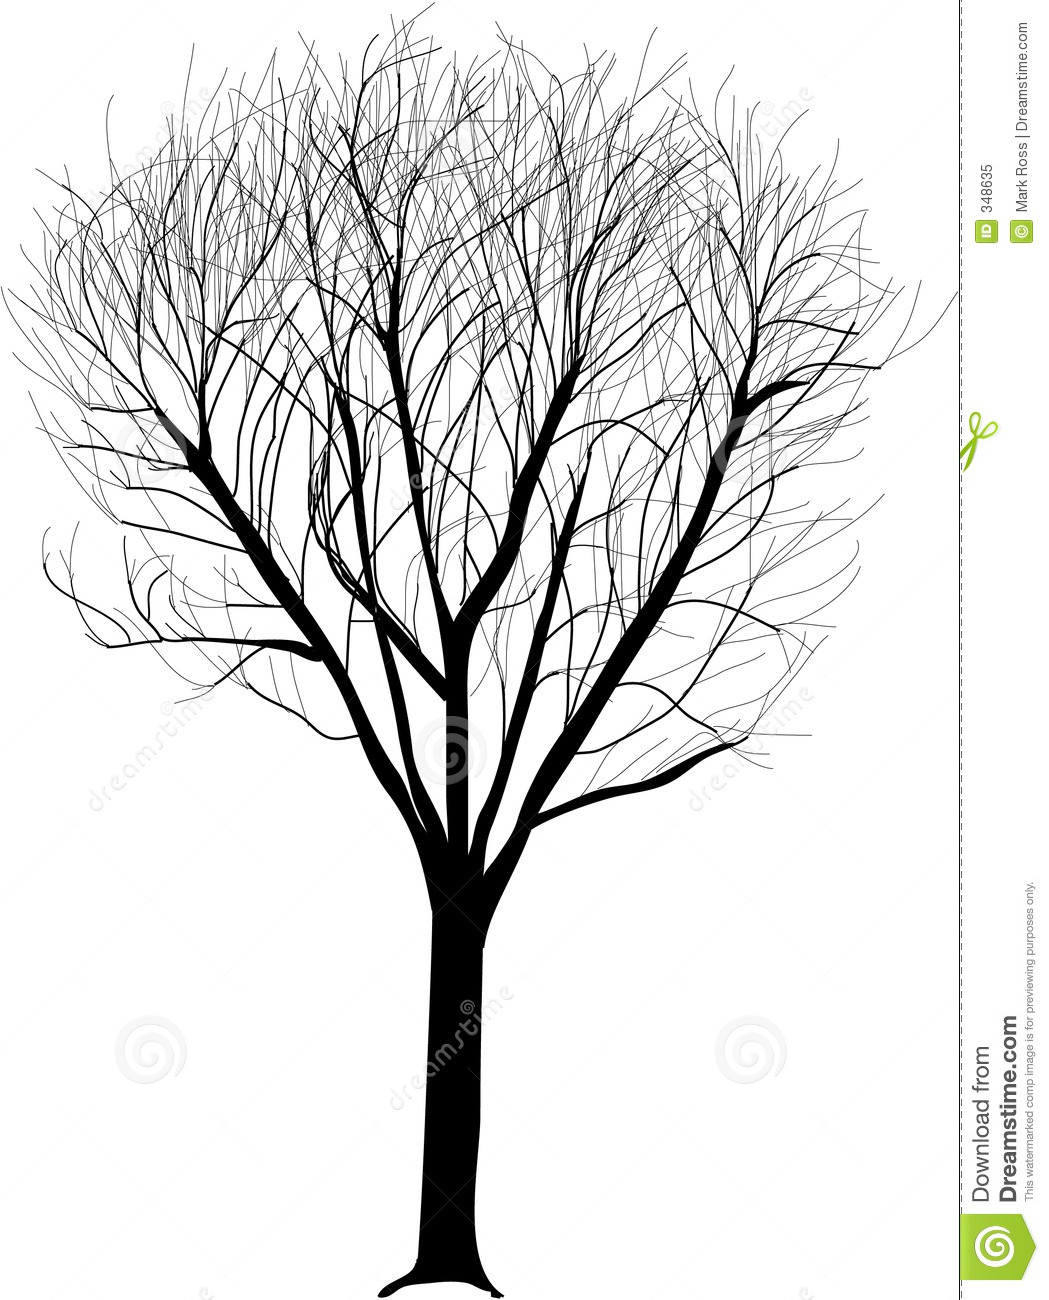 Lone Tree Illustration Royalty Free Stock Photo - Image: 348635